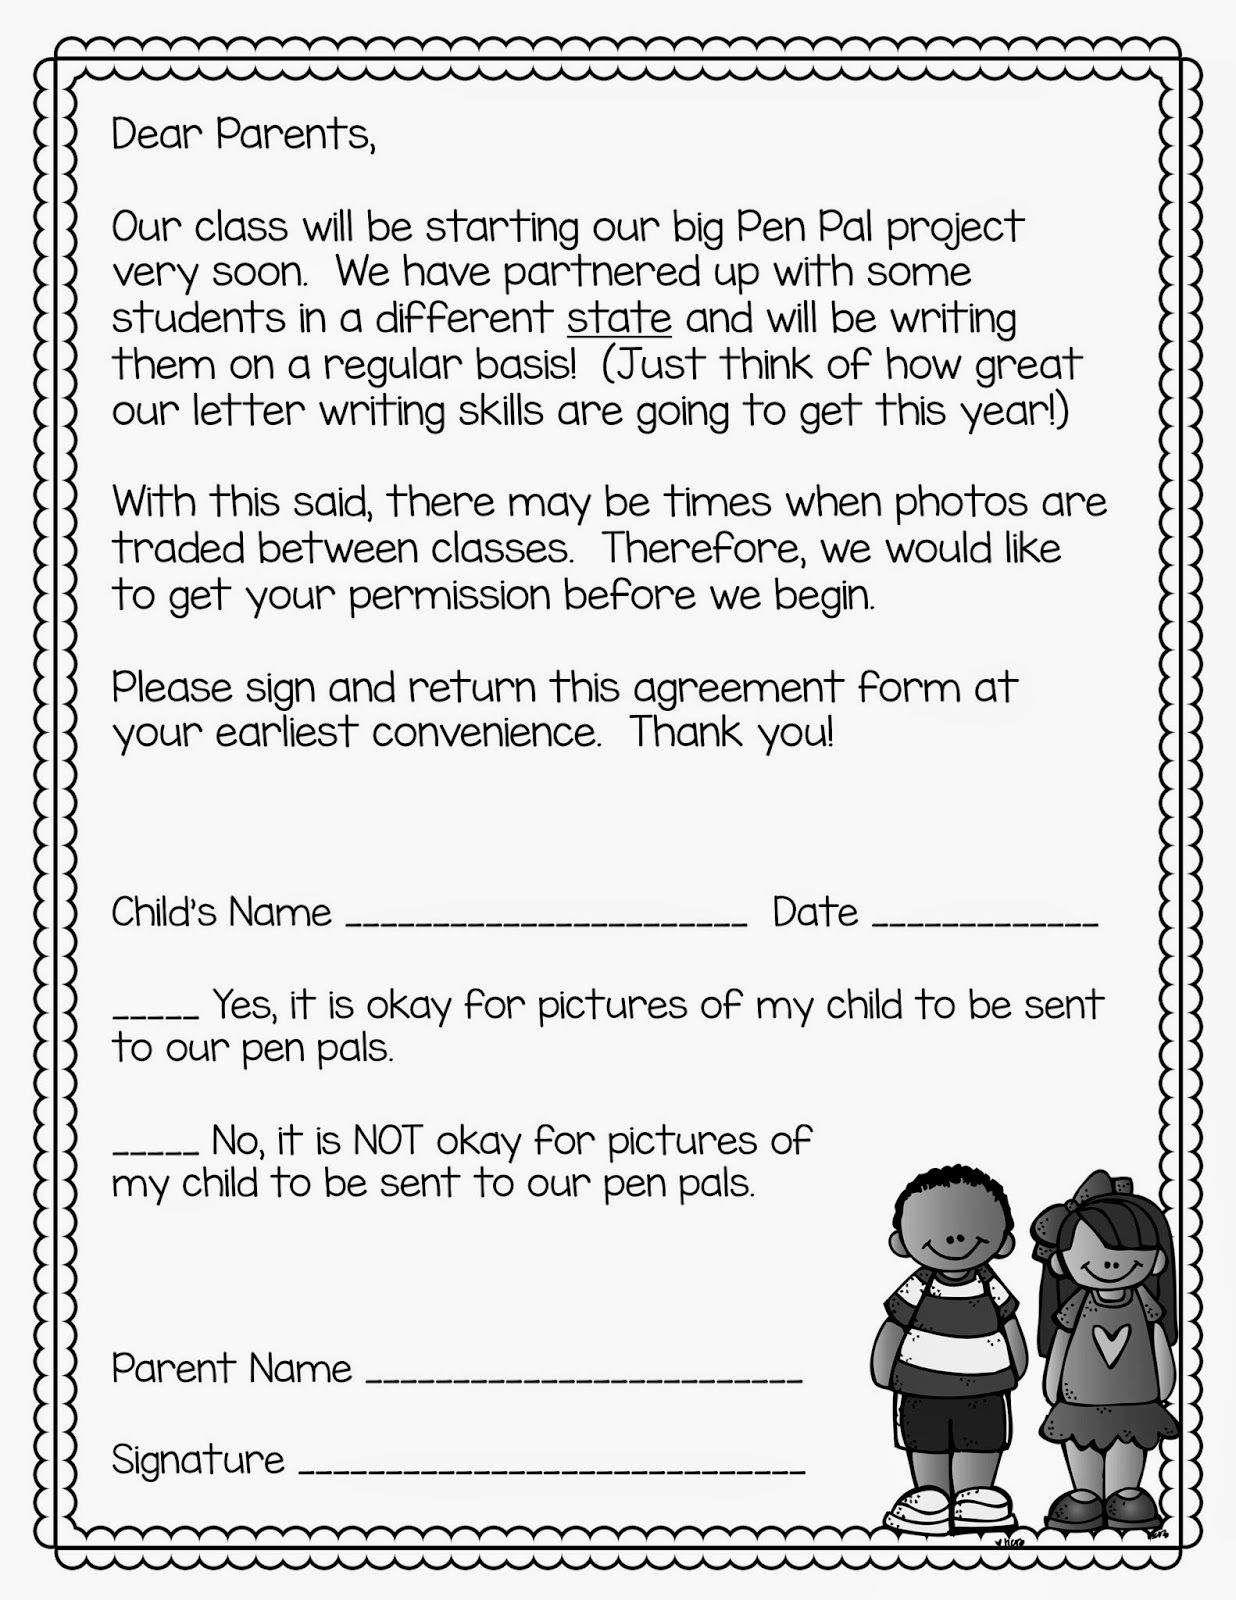 classroom pen pals tips and tricks for the year classroom classroom pen pals tips and tricks for the year